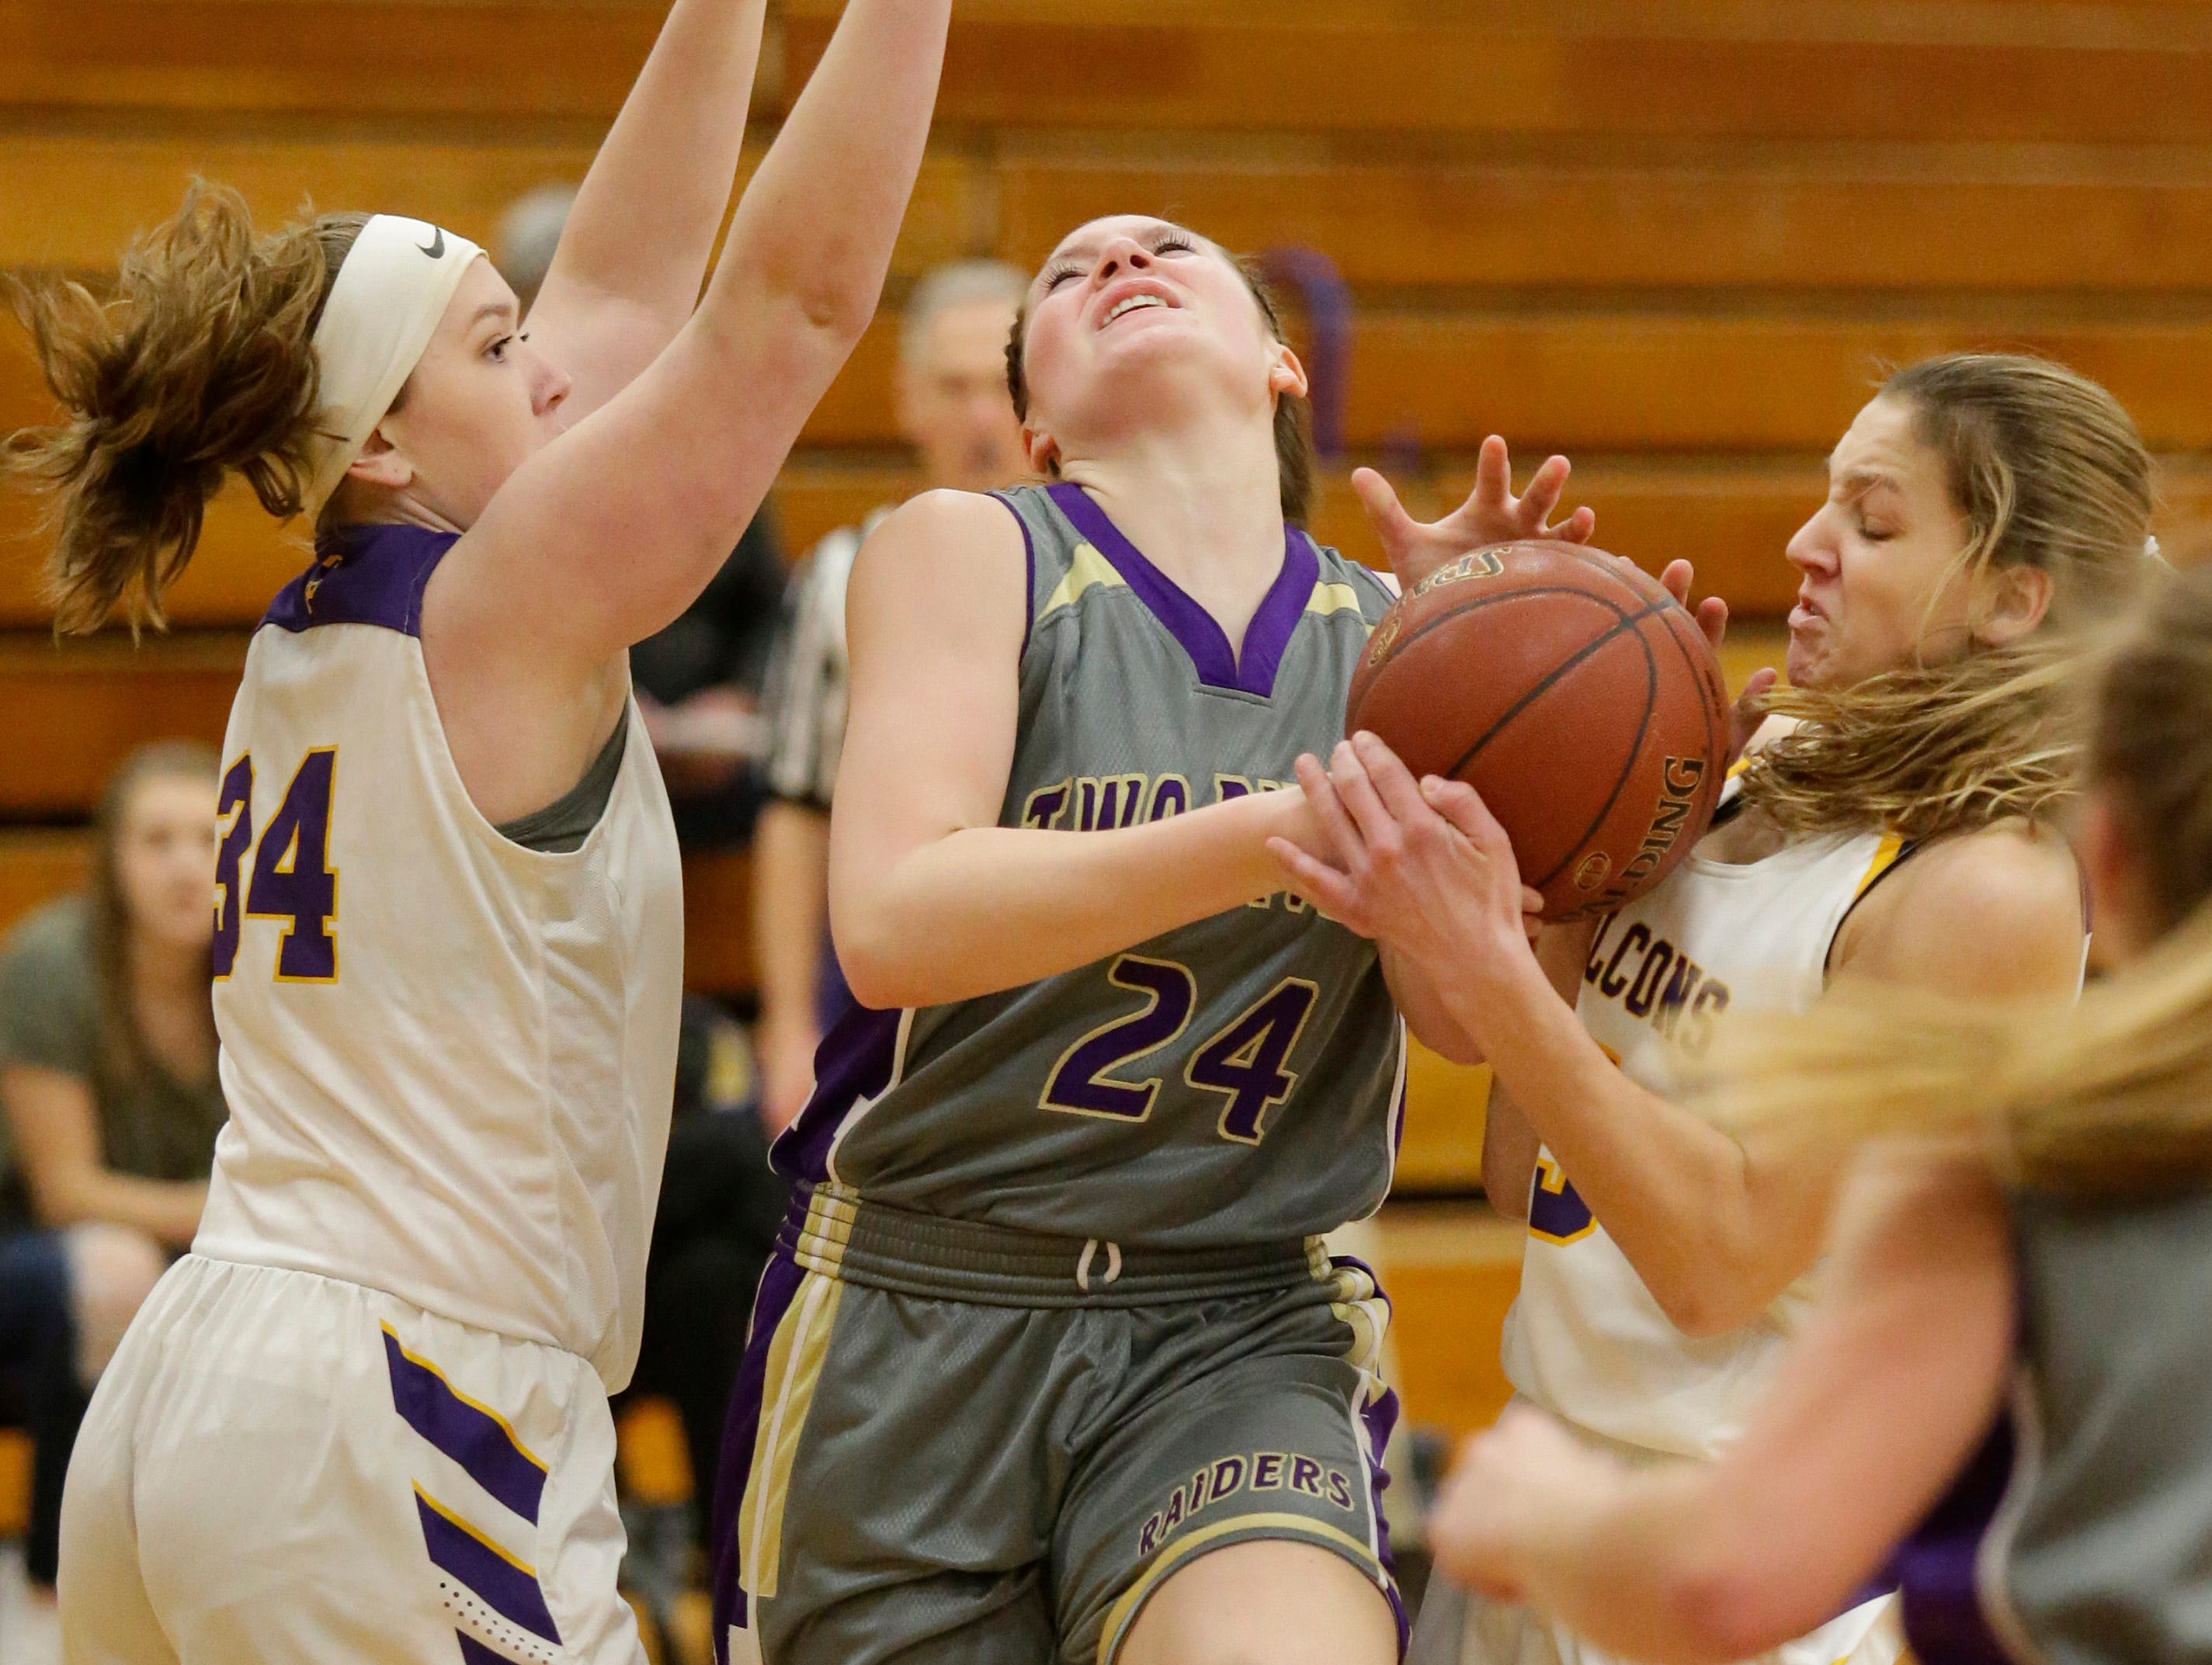 Two Rivers' Kiley Graff (24) struggles for the ball against Sheboygan Falls, Thursday, February 14, 2019, in Sheboygan Falls, Wis.